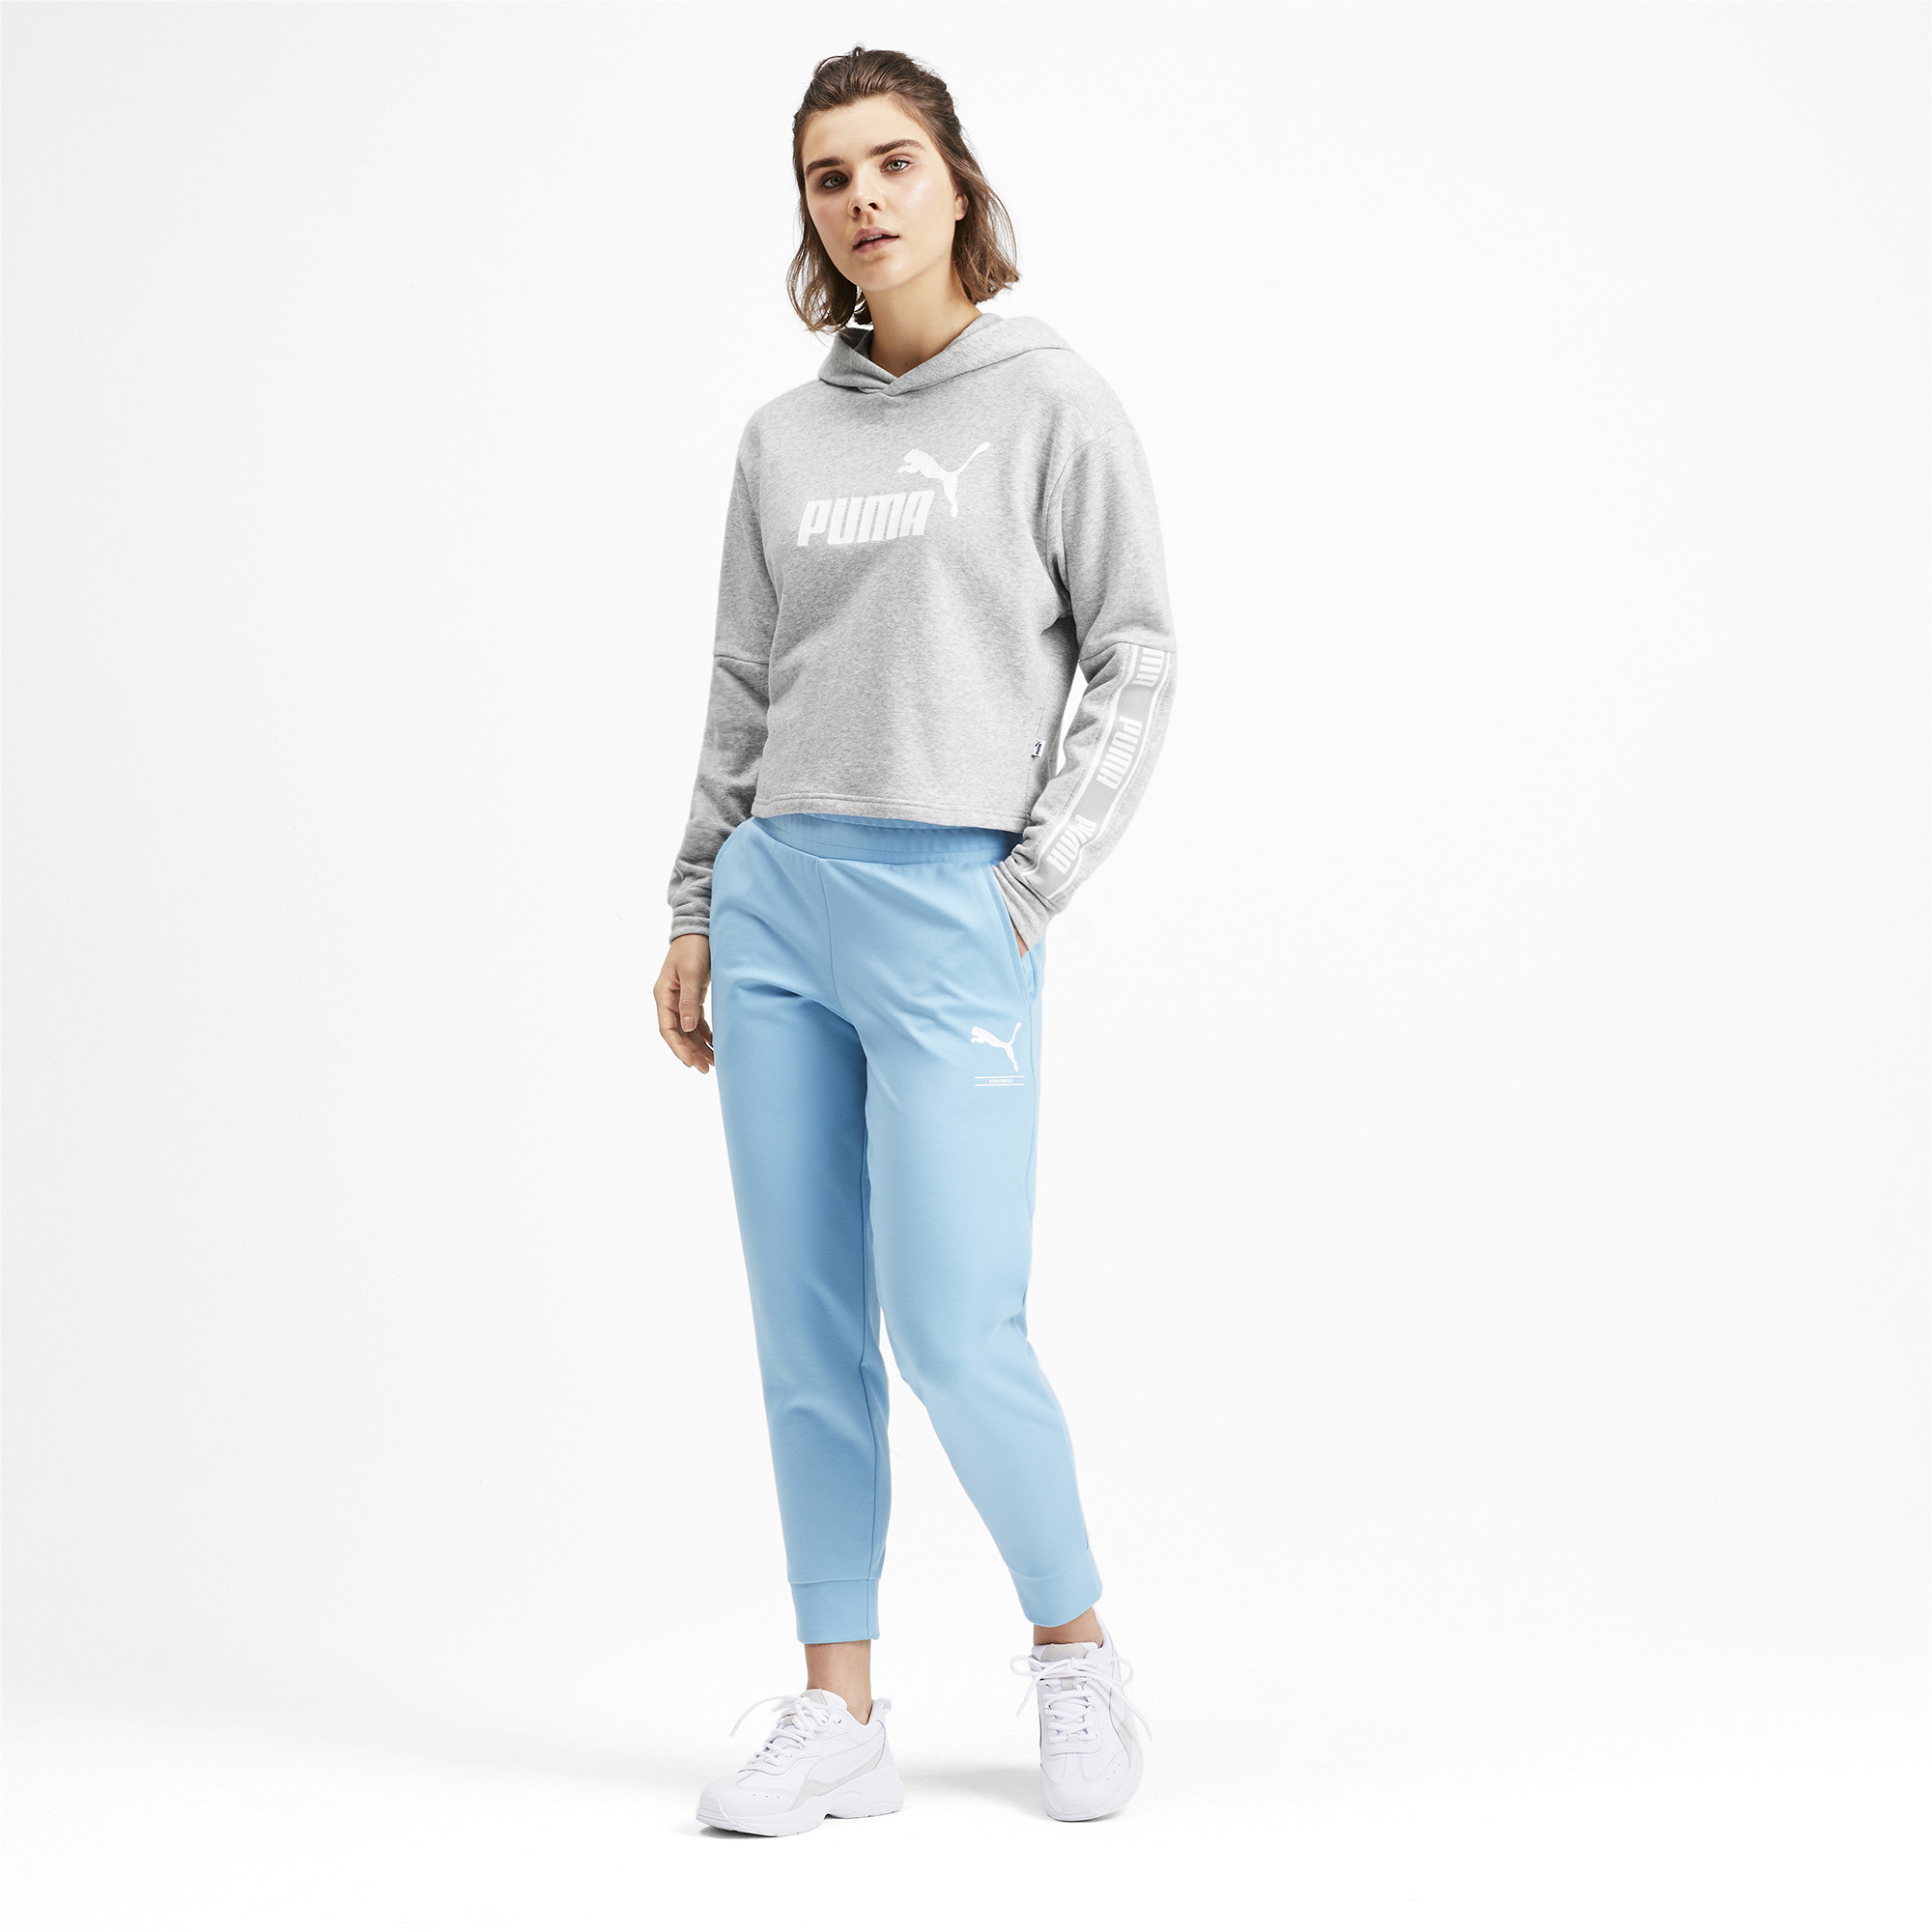 PUMA-Amplified-Women-039-s-Cropped-Hoodie-Women-Sweat-Basics thumbnail 16